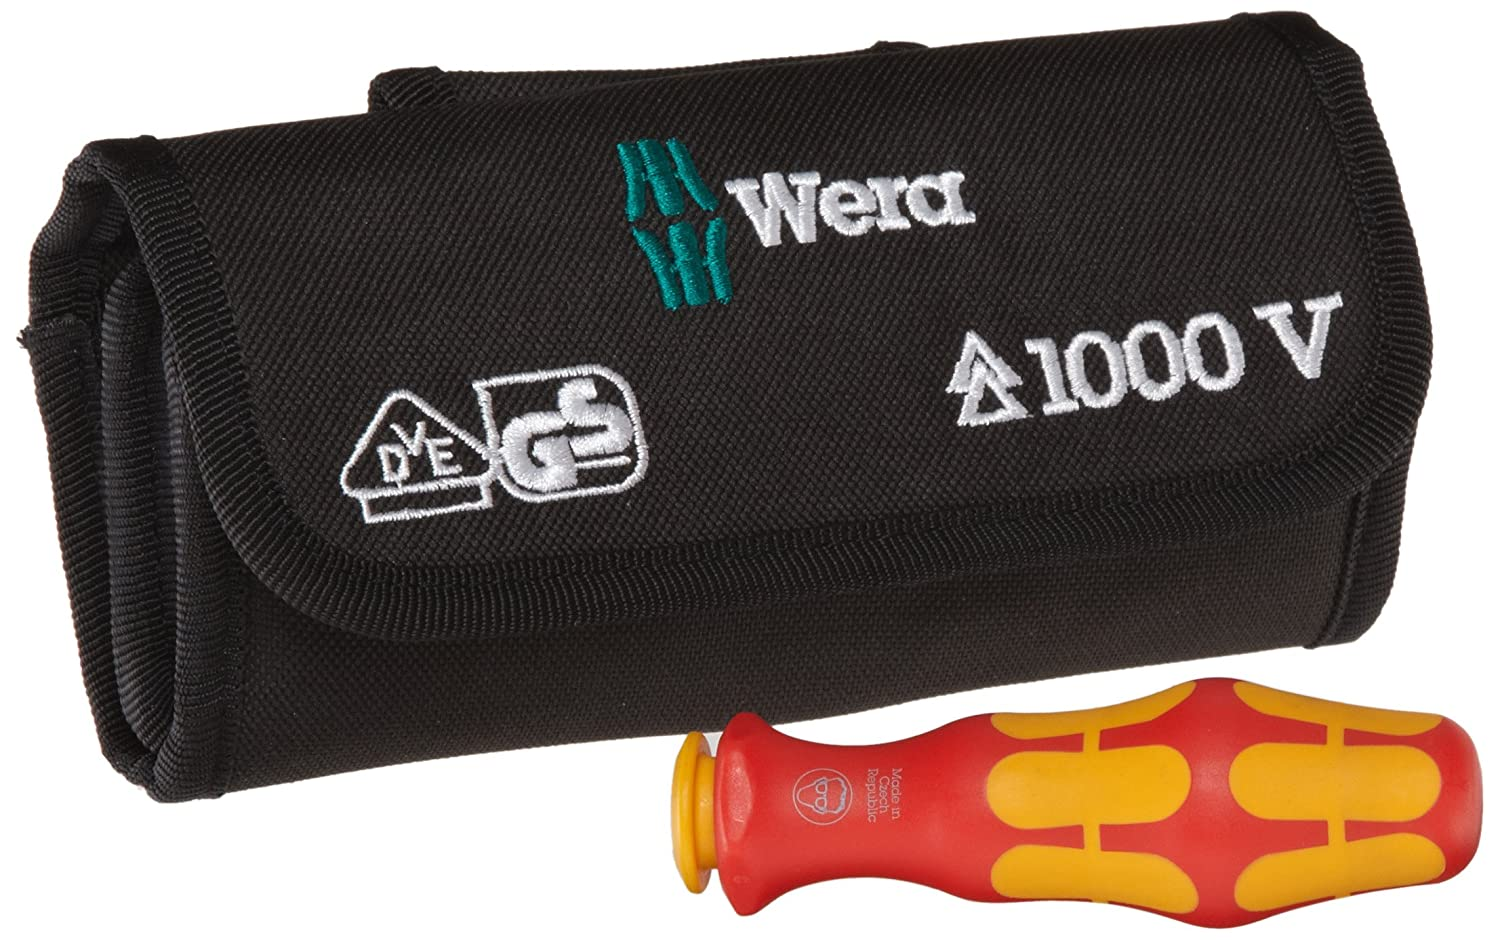 Wera Kraftform VDE Kompakt Screwdriver Set Interchangable 18 Piece